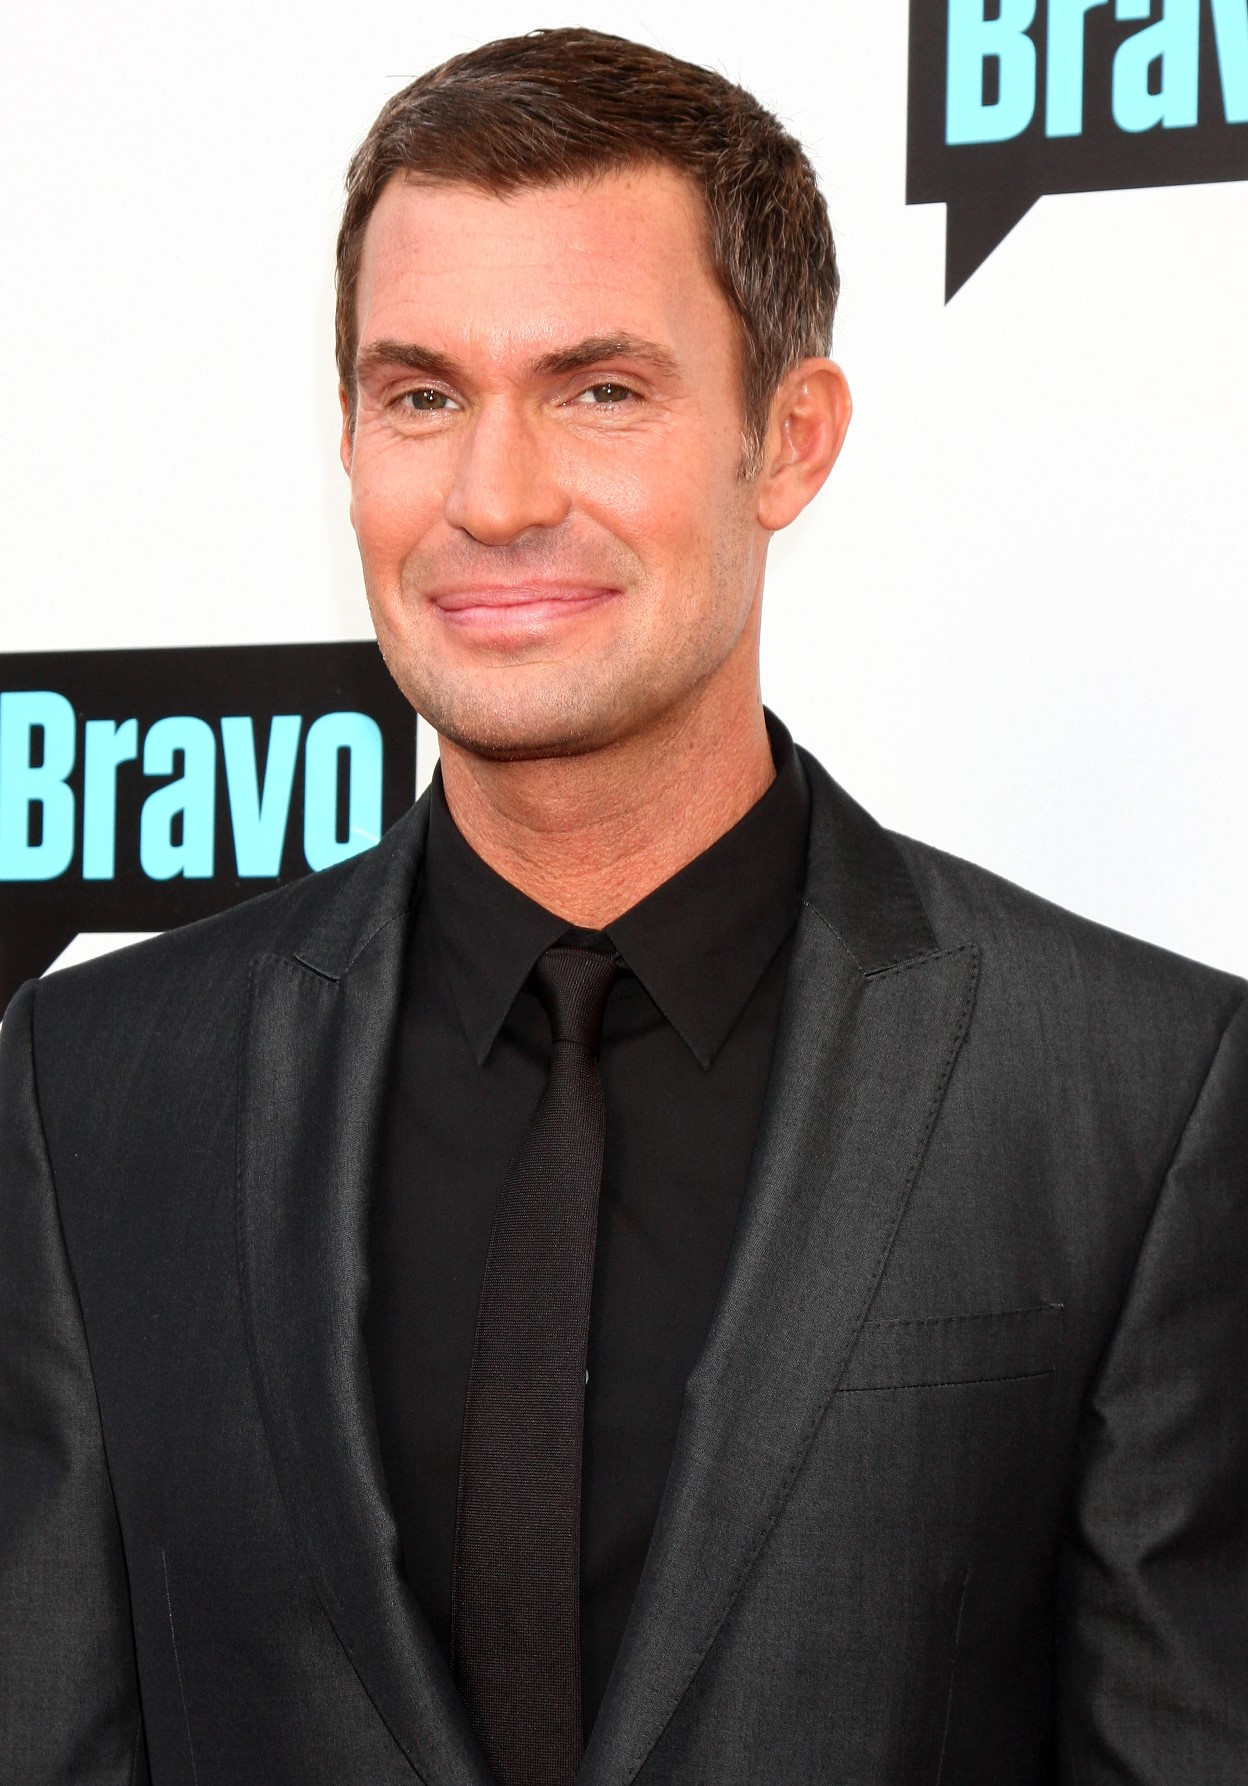 Jeff Lewis Talks Bravo Surrogate Lawsuit